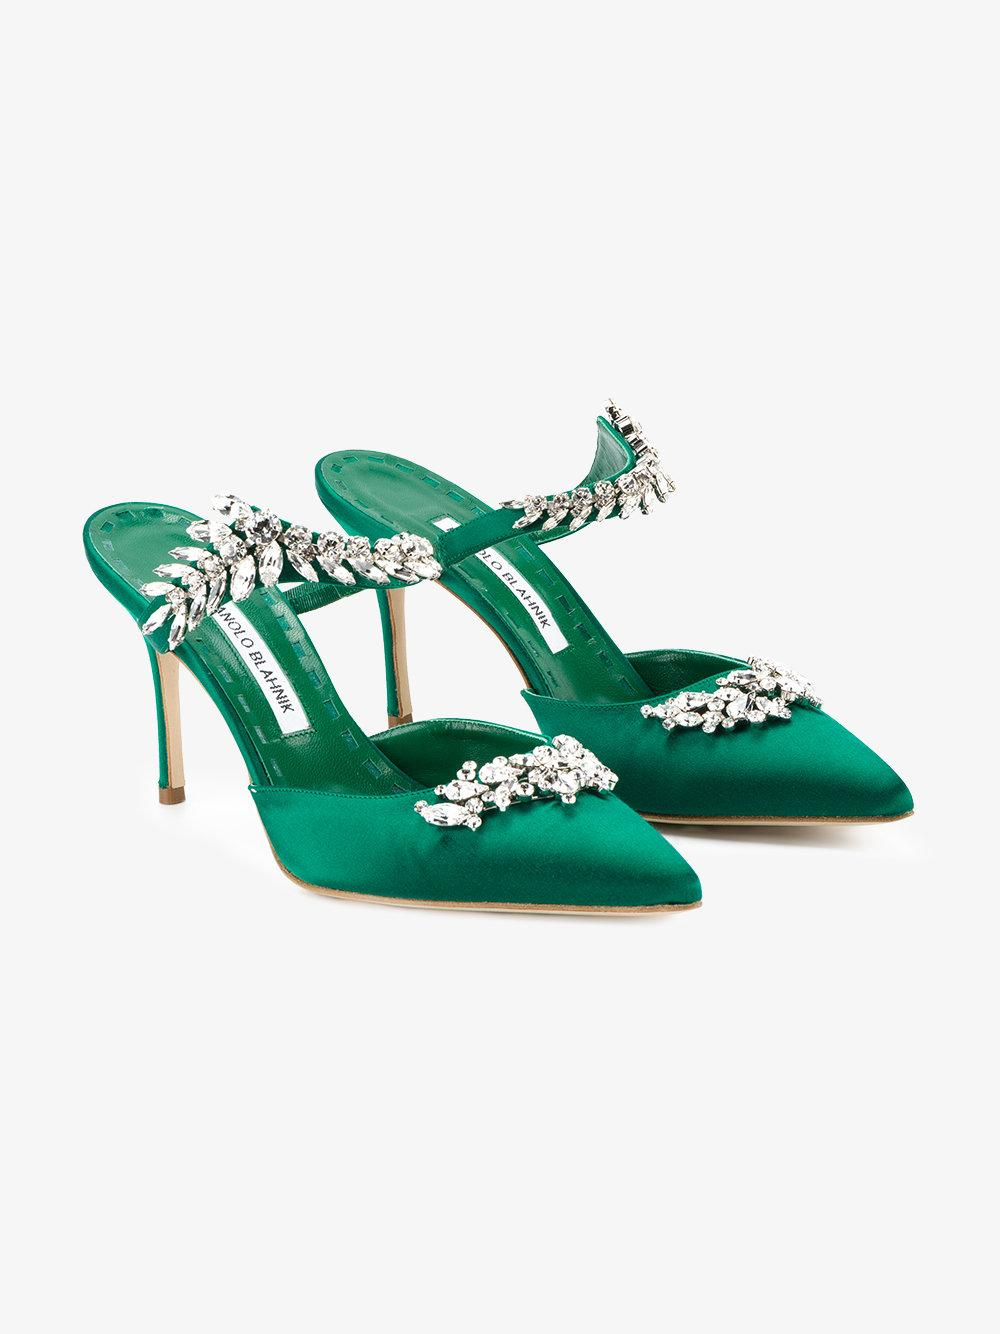 Manolo blahnik lurum pumps in green lyst for Who is manolo blahnik